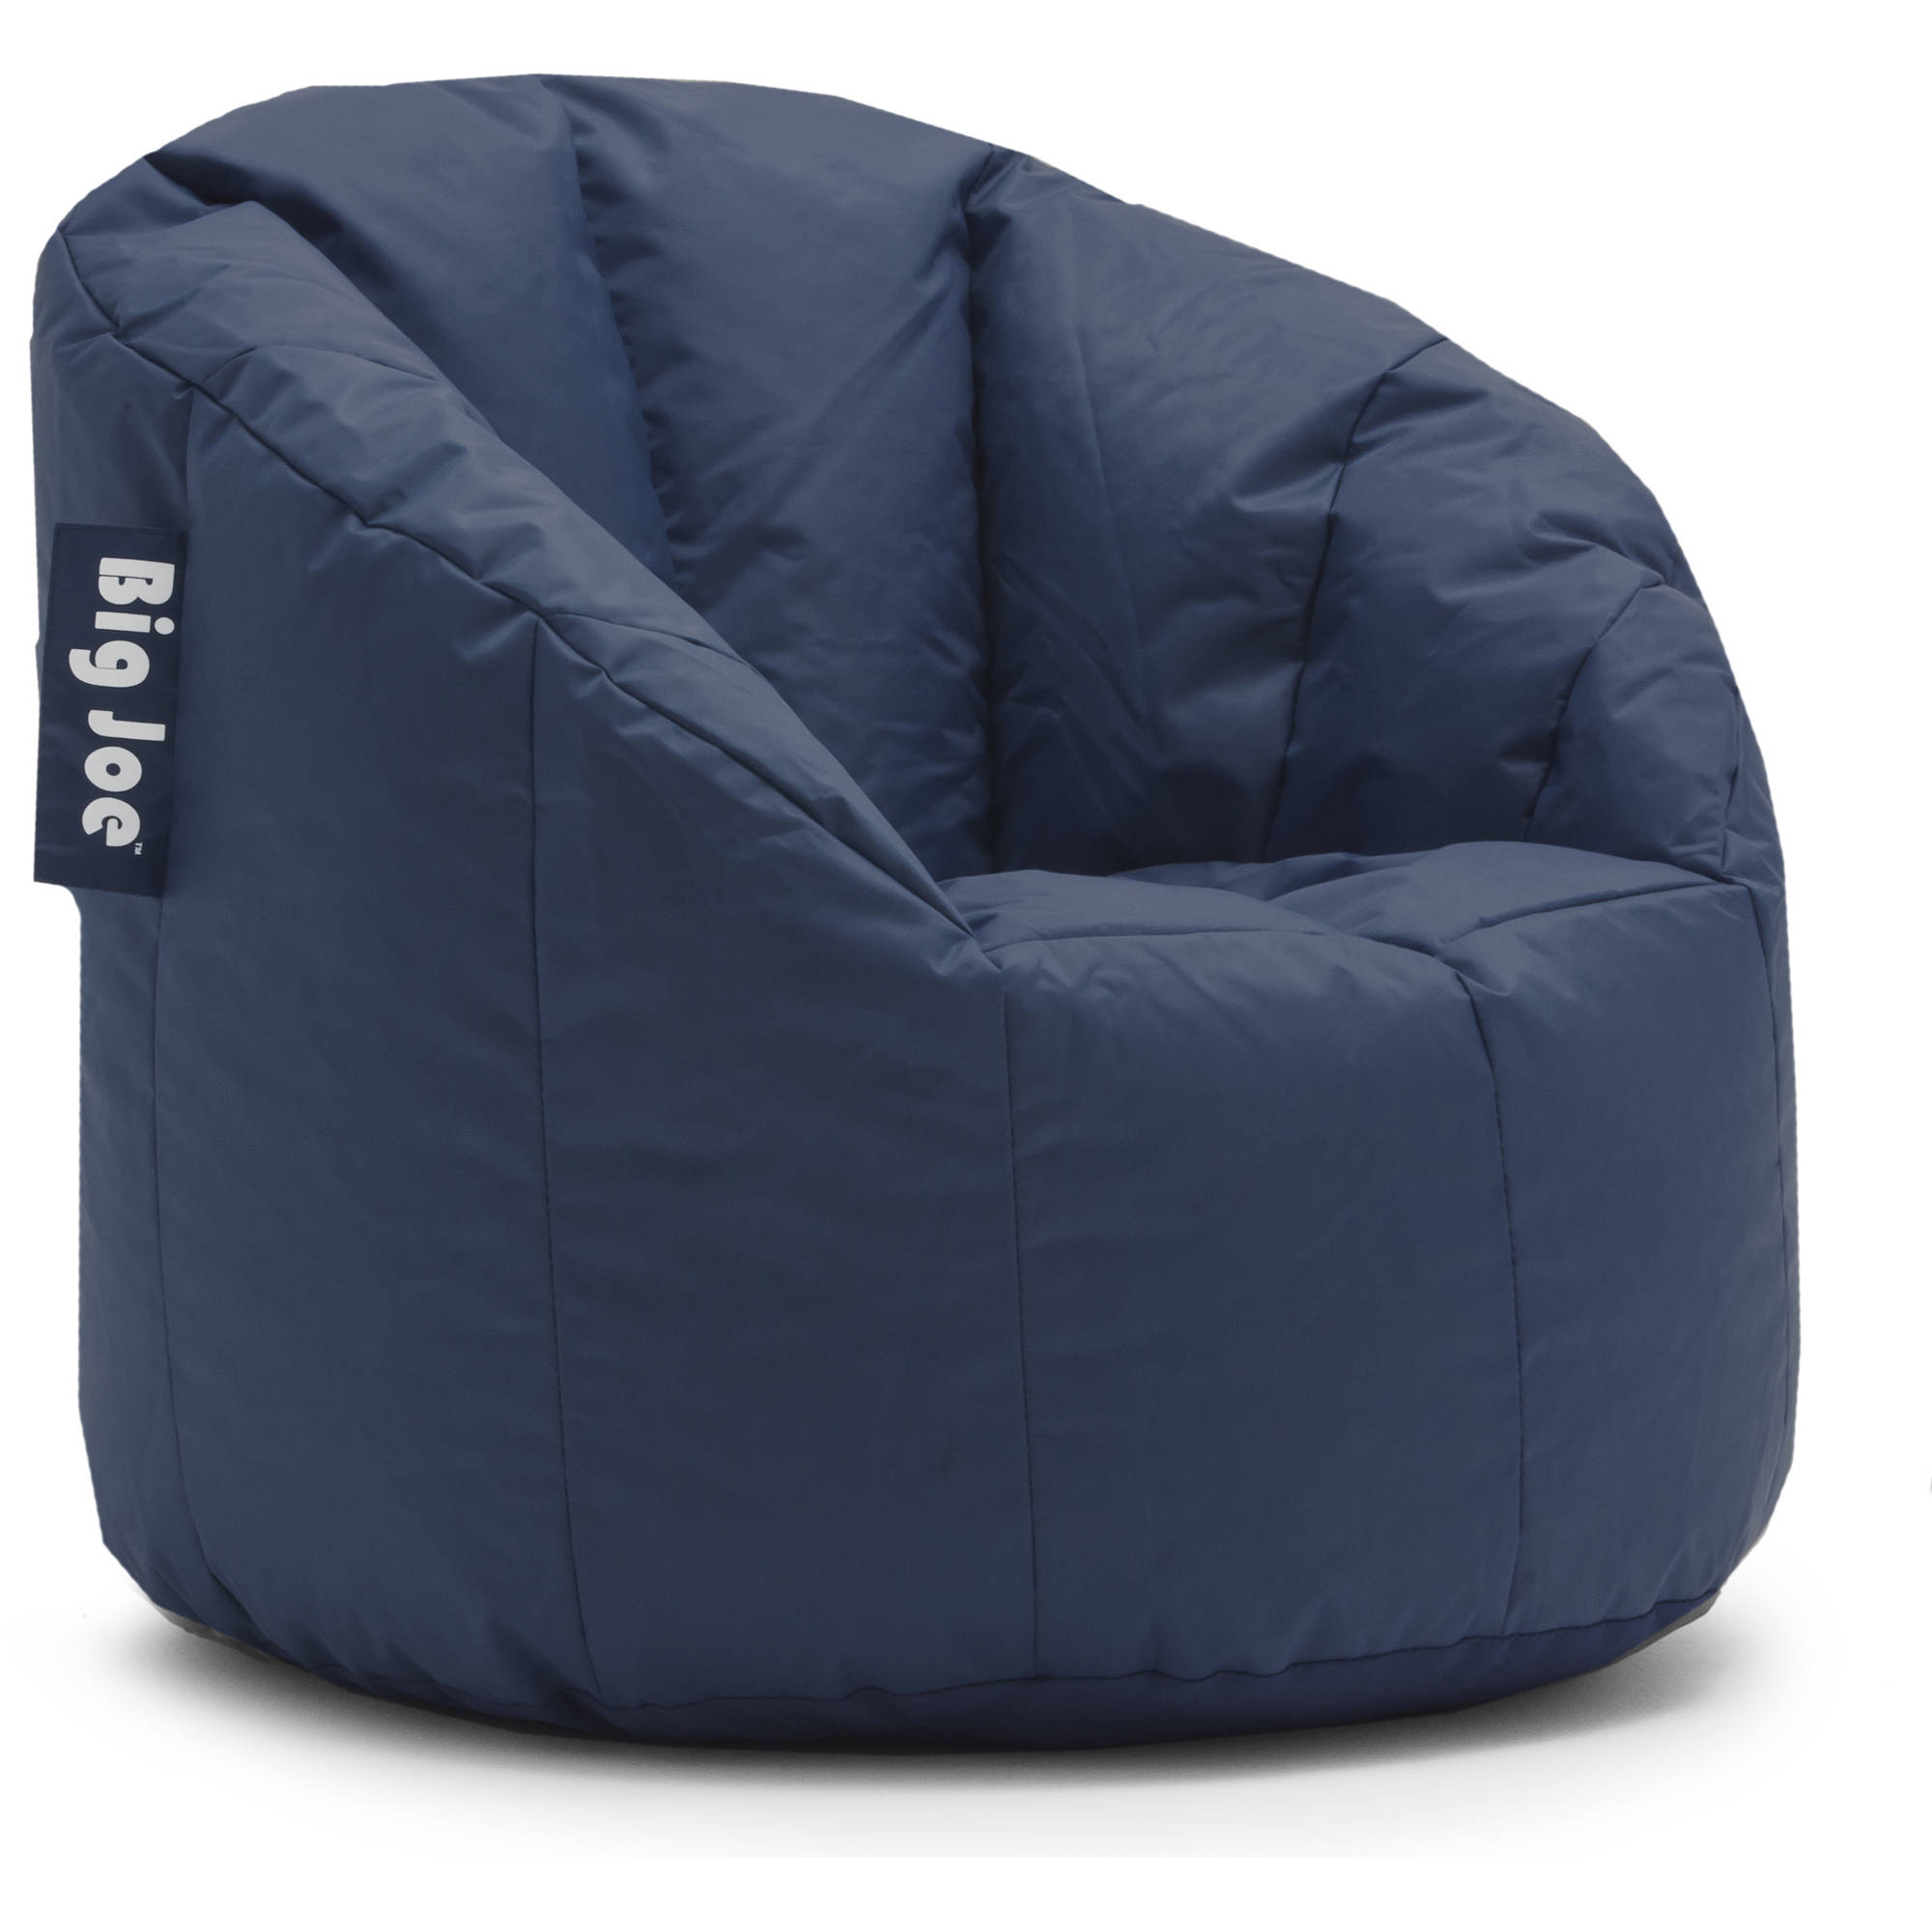 Big Joe Milano Bean Bag Chair, Multiple Colors